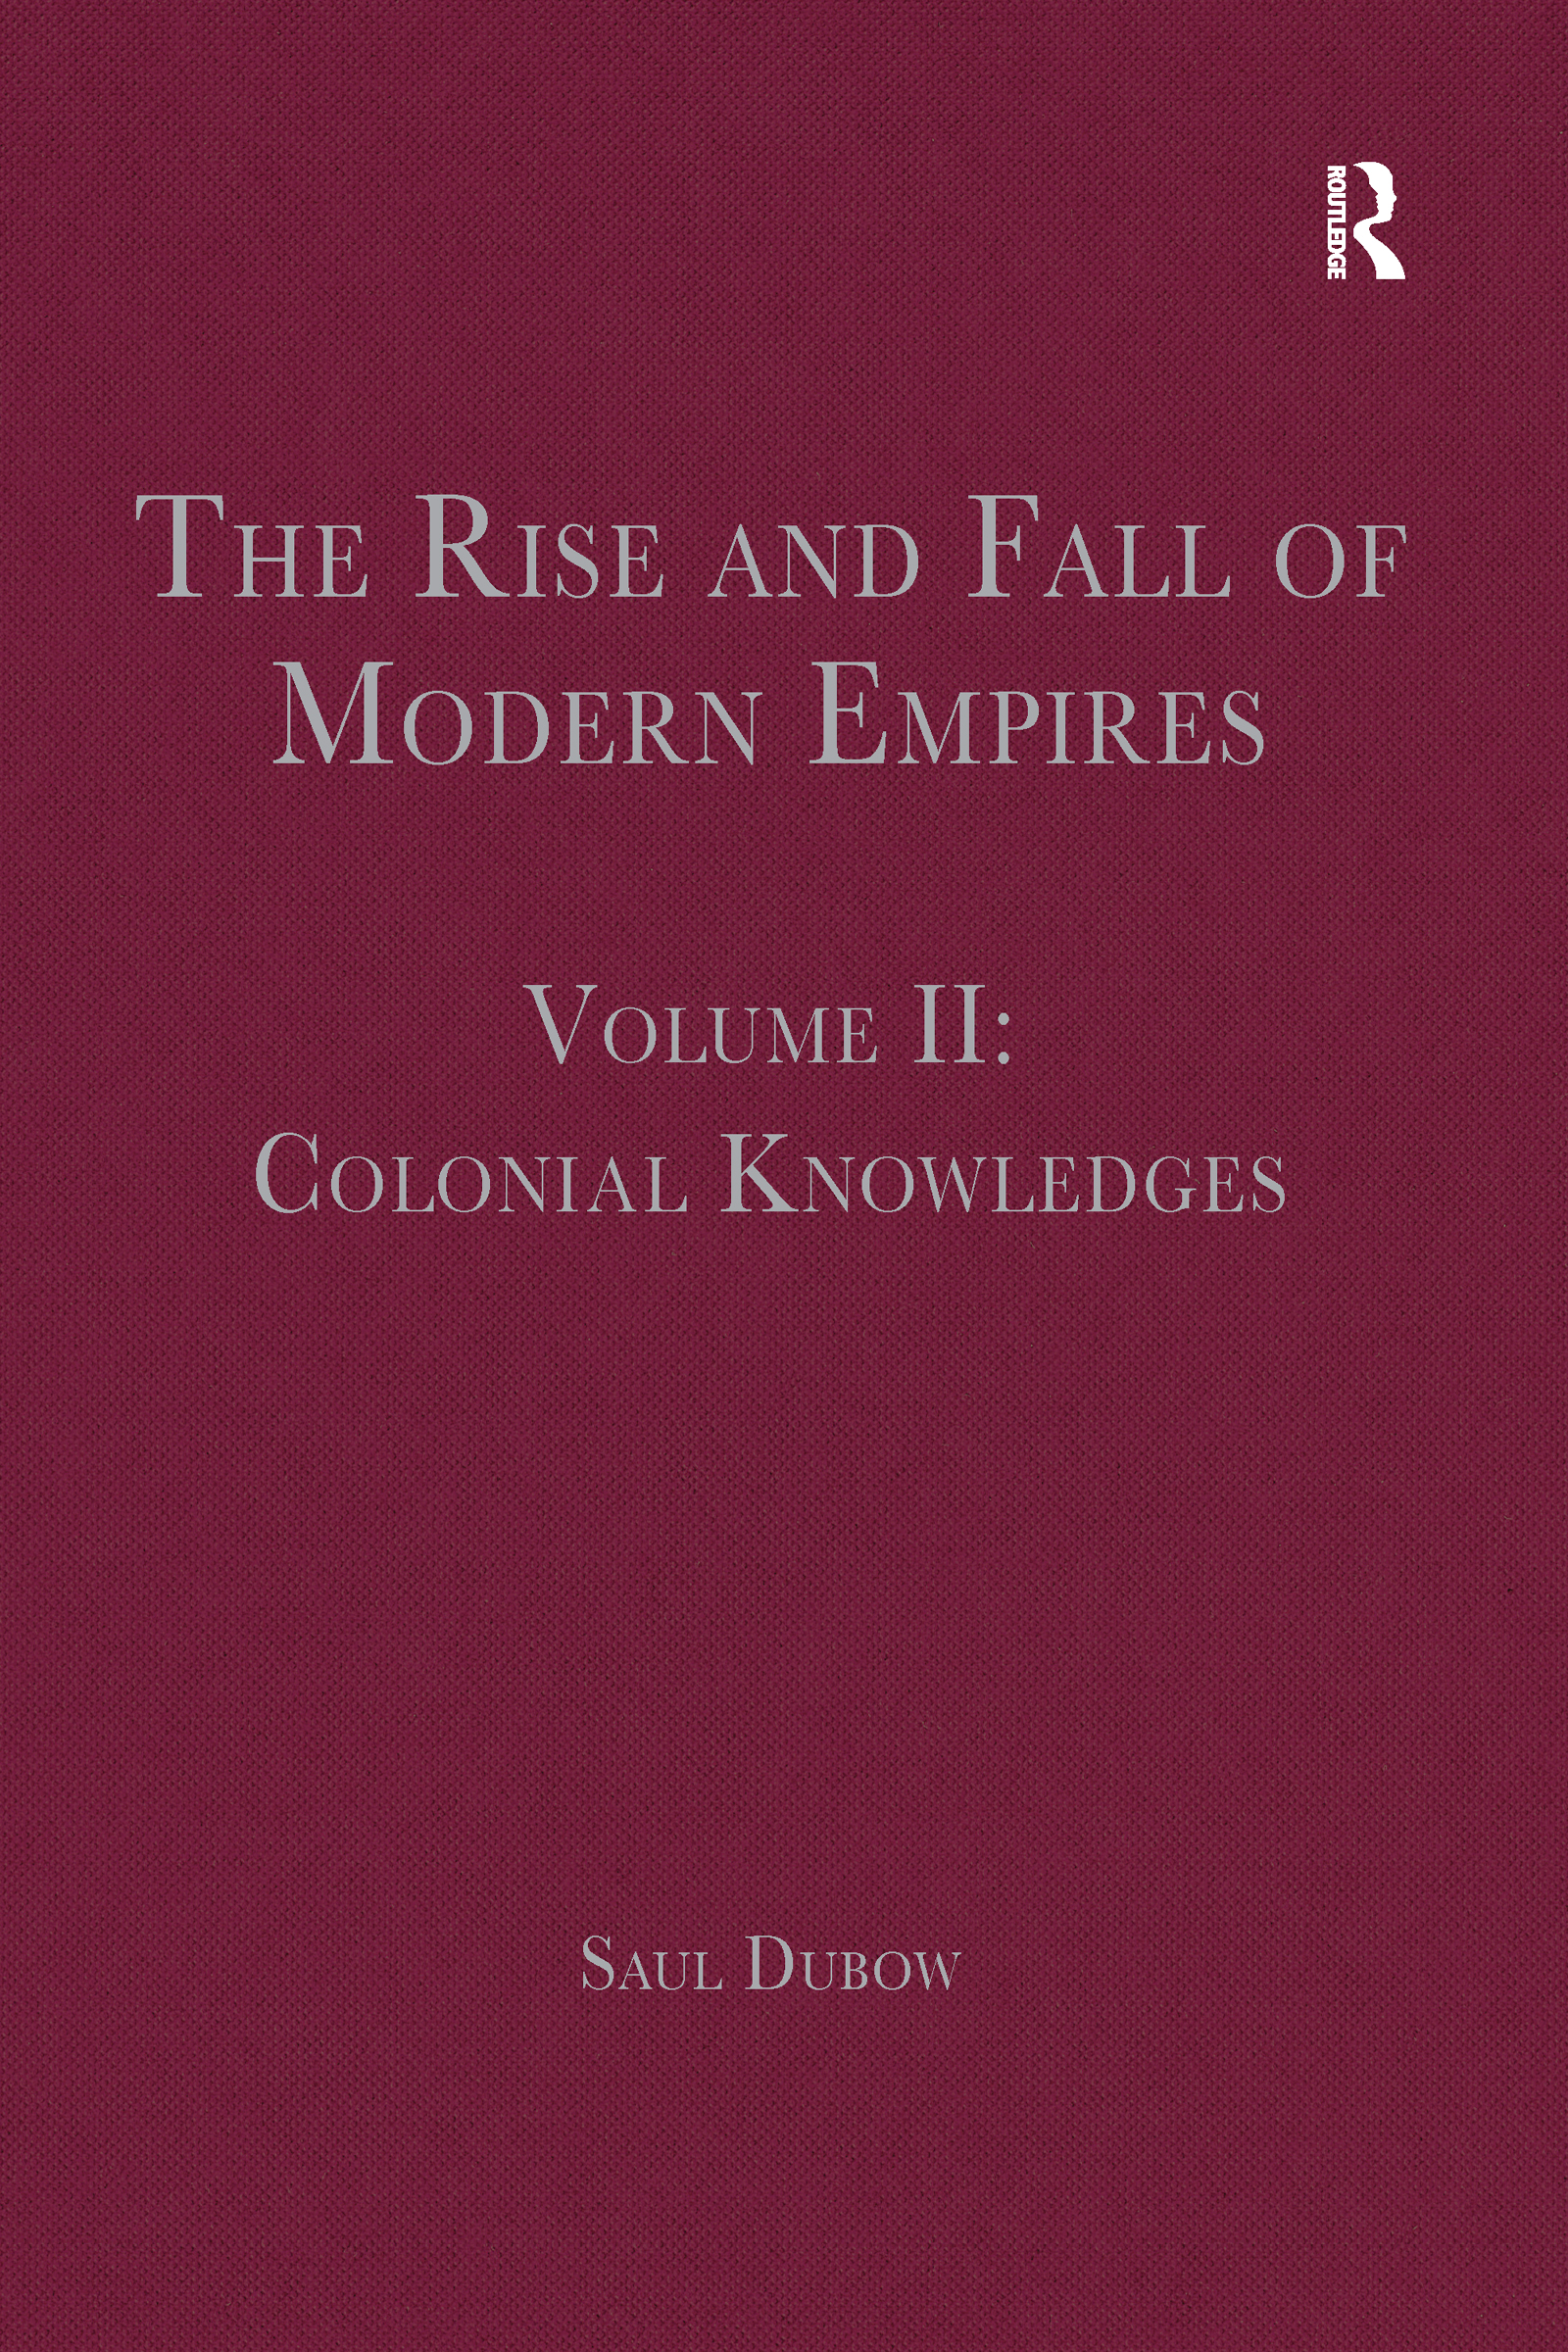 The Rise and Fall of Modern Empires, Volume II: Colonial Knowledges book cover